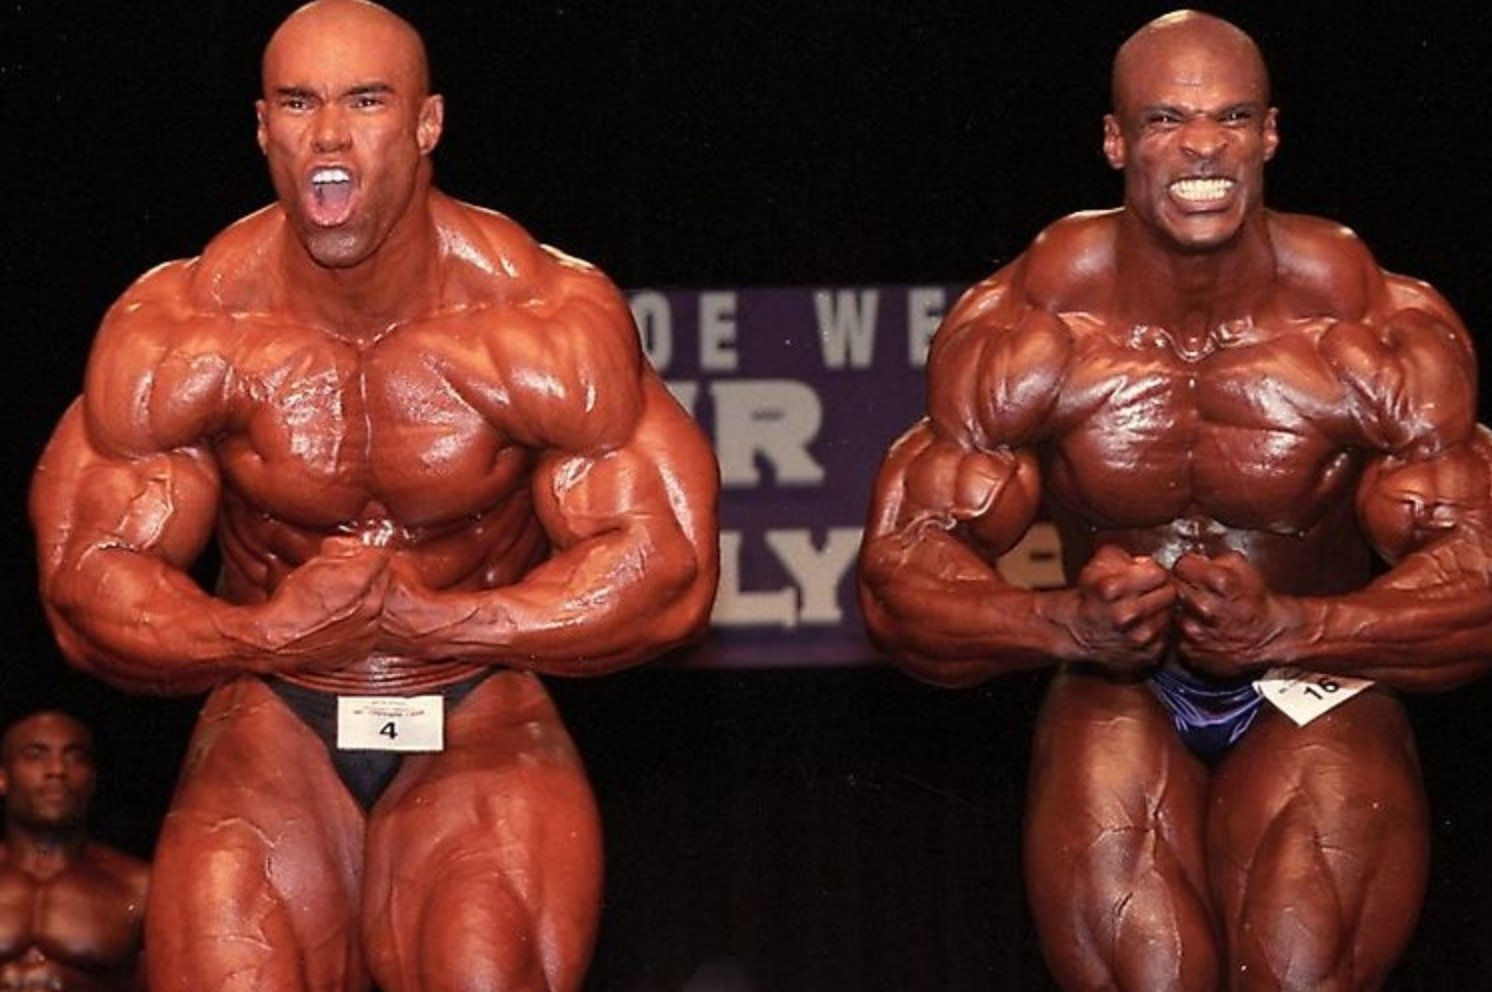 WATCH: Kevin Levrone impersonates Ronnie Coleman (Funny)